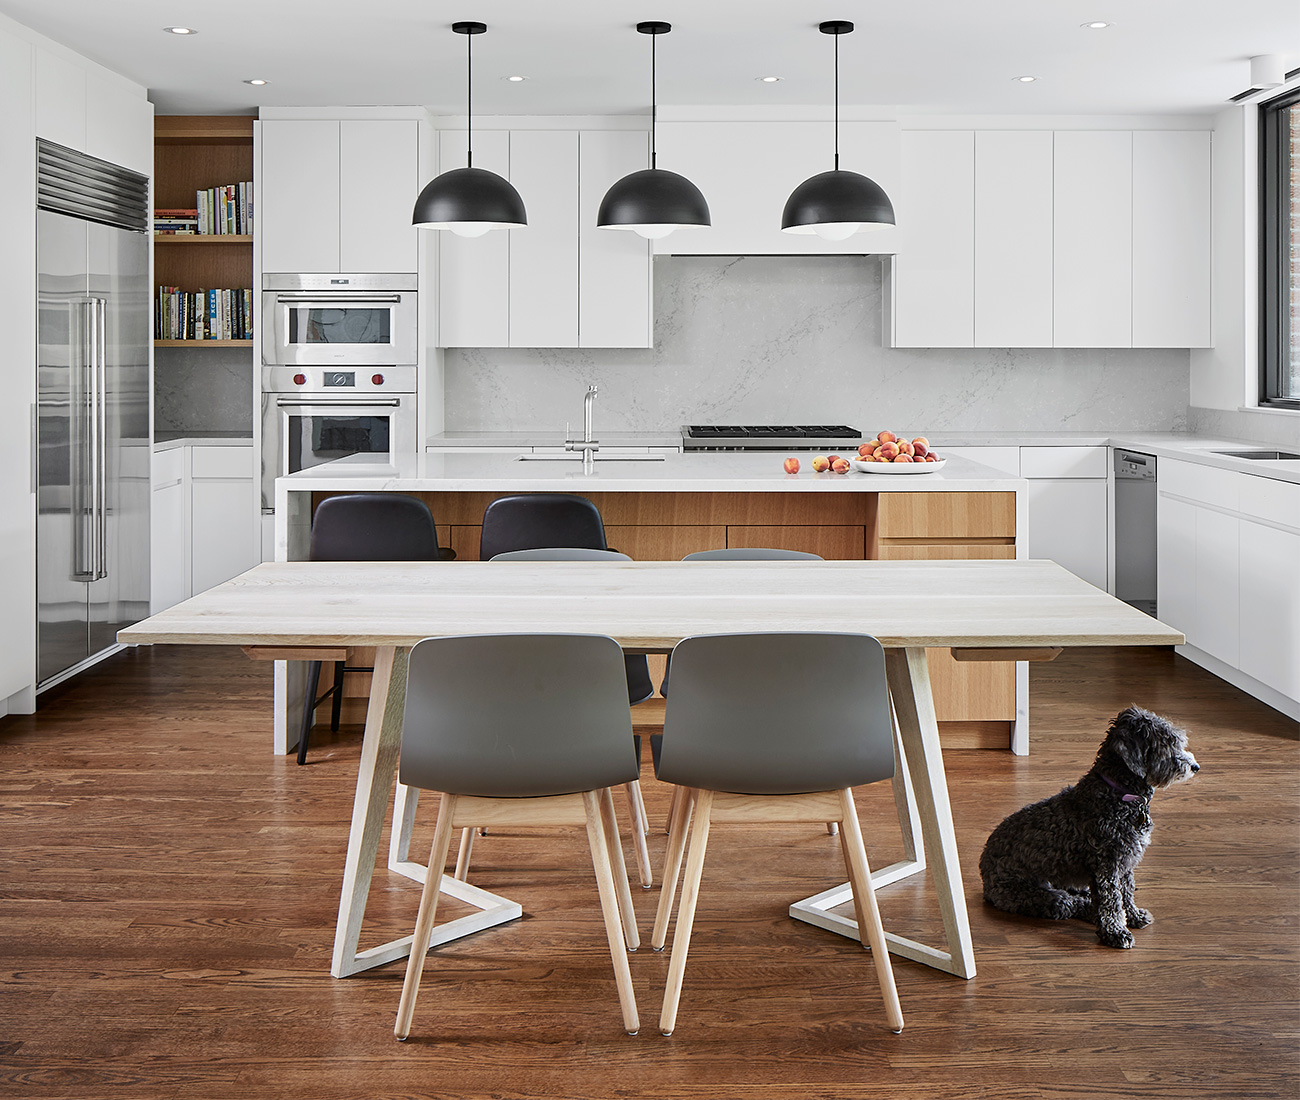 Kitchen dining chairs from Design Within Reach; faucets from Ginger's; expandable dining table by Cabinet.